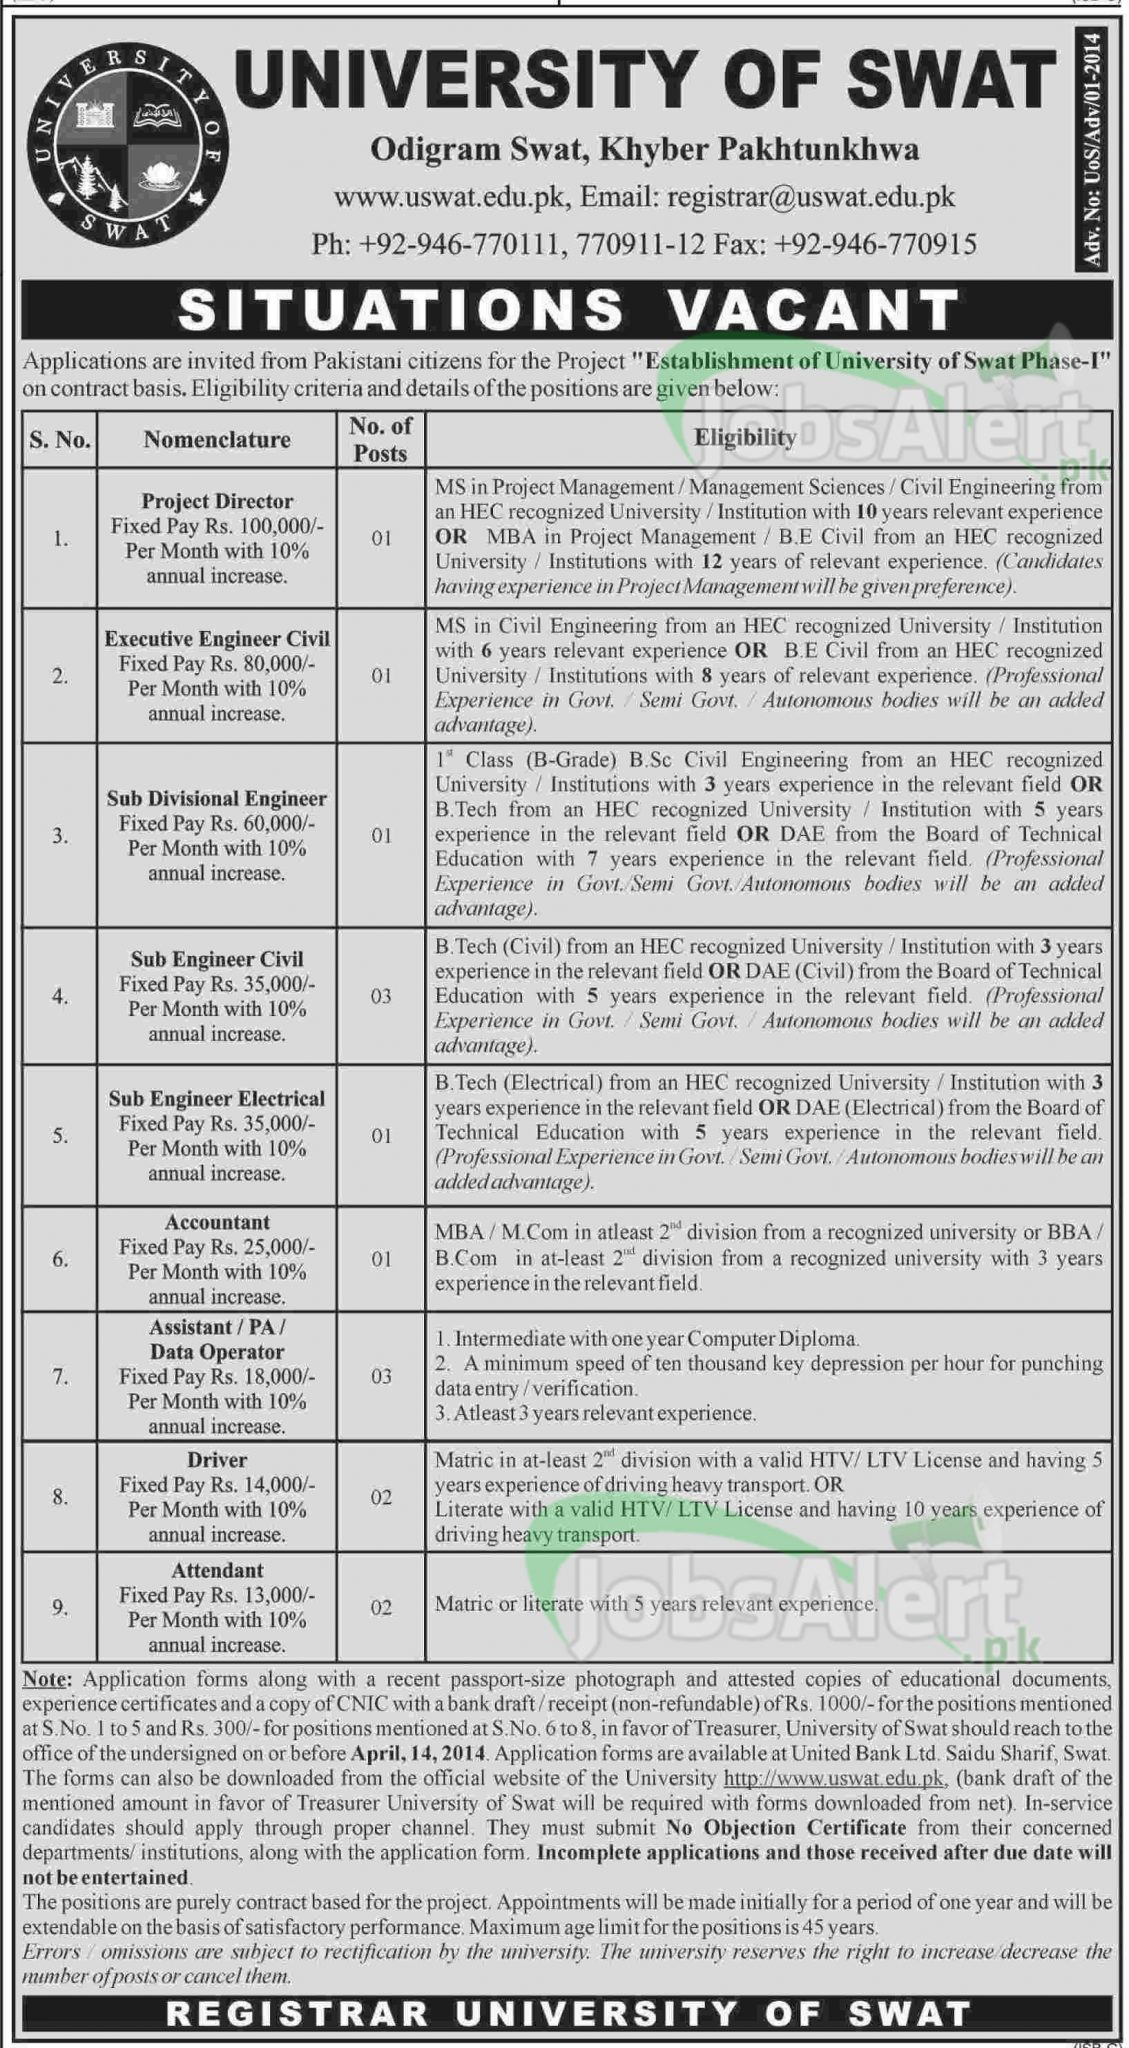 University of Swat Jobs for Accountant & Assistant in KPK